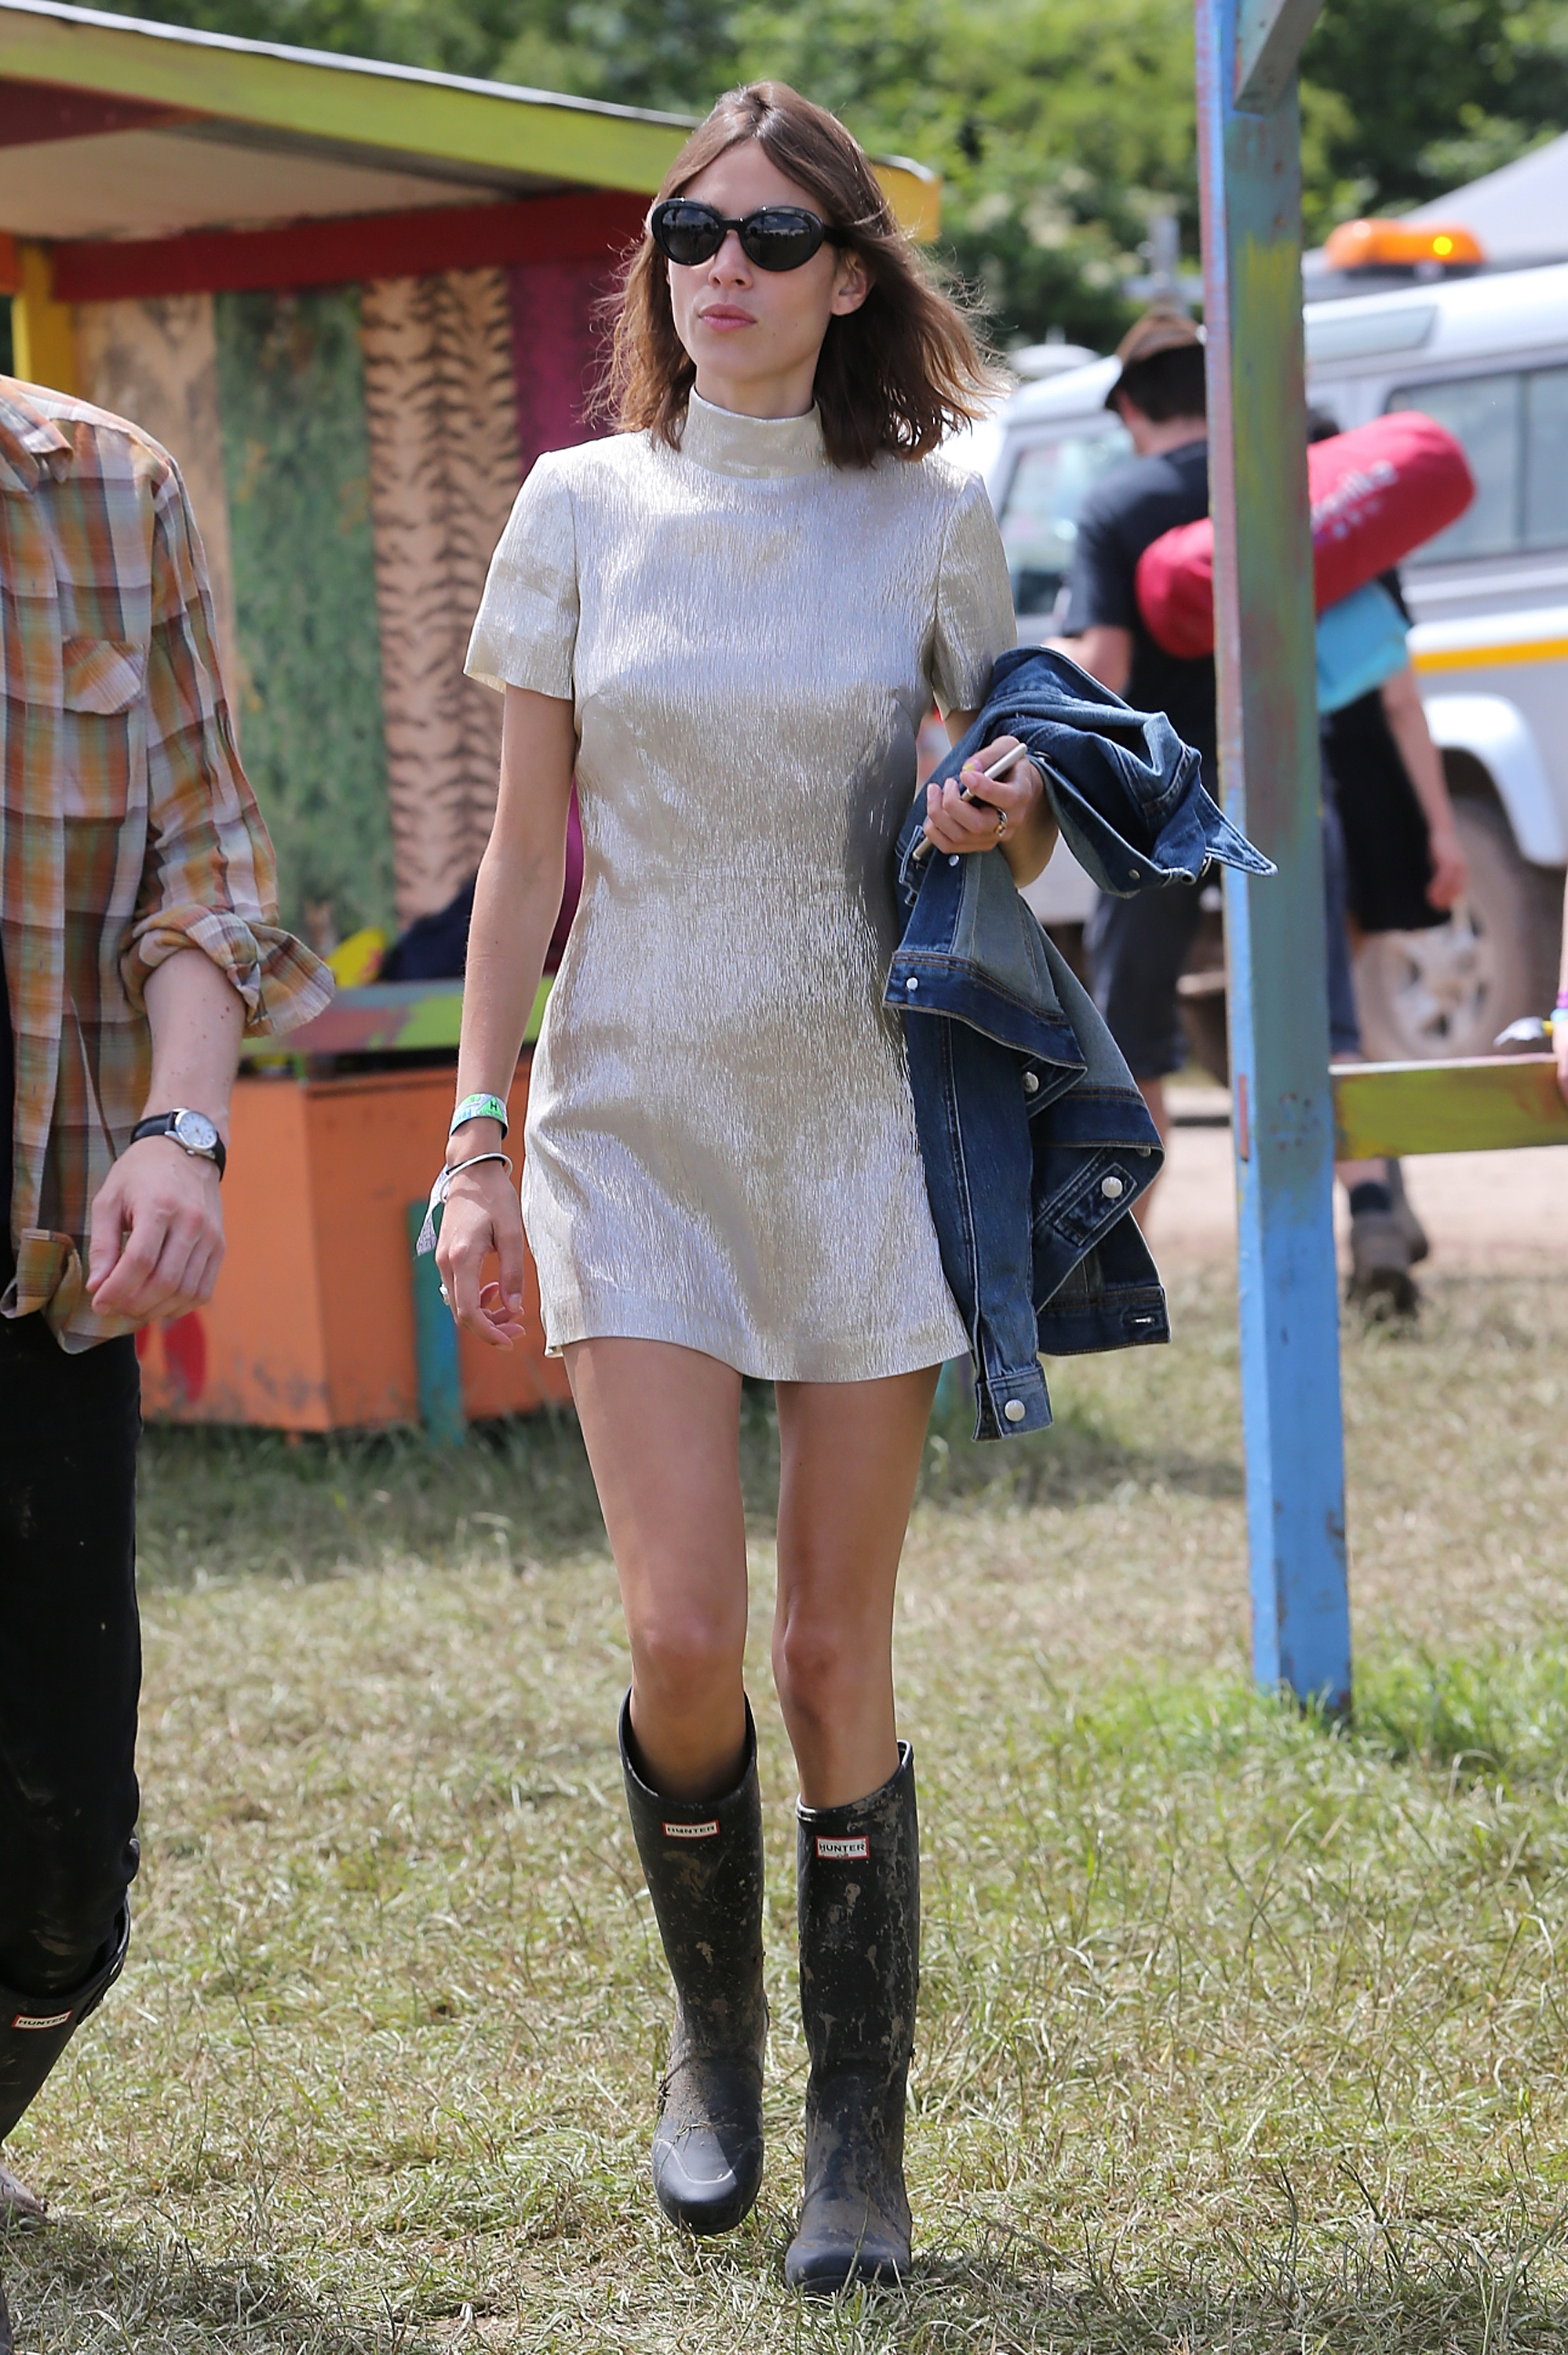 Jumpsuits Gumboots And Denim Cut Offs Welcome To Glastonbury Fashion